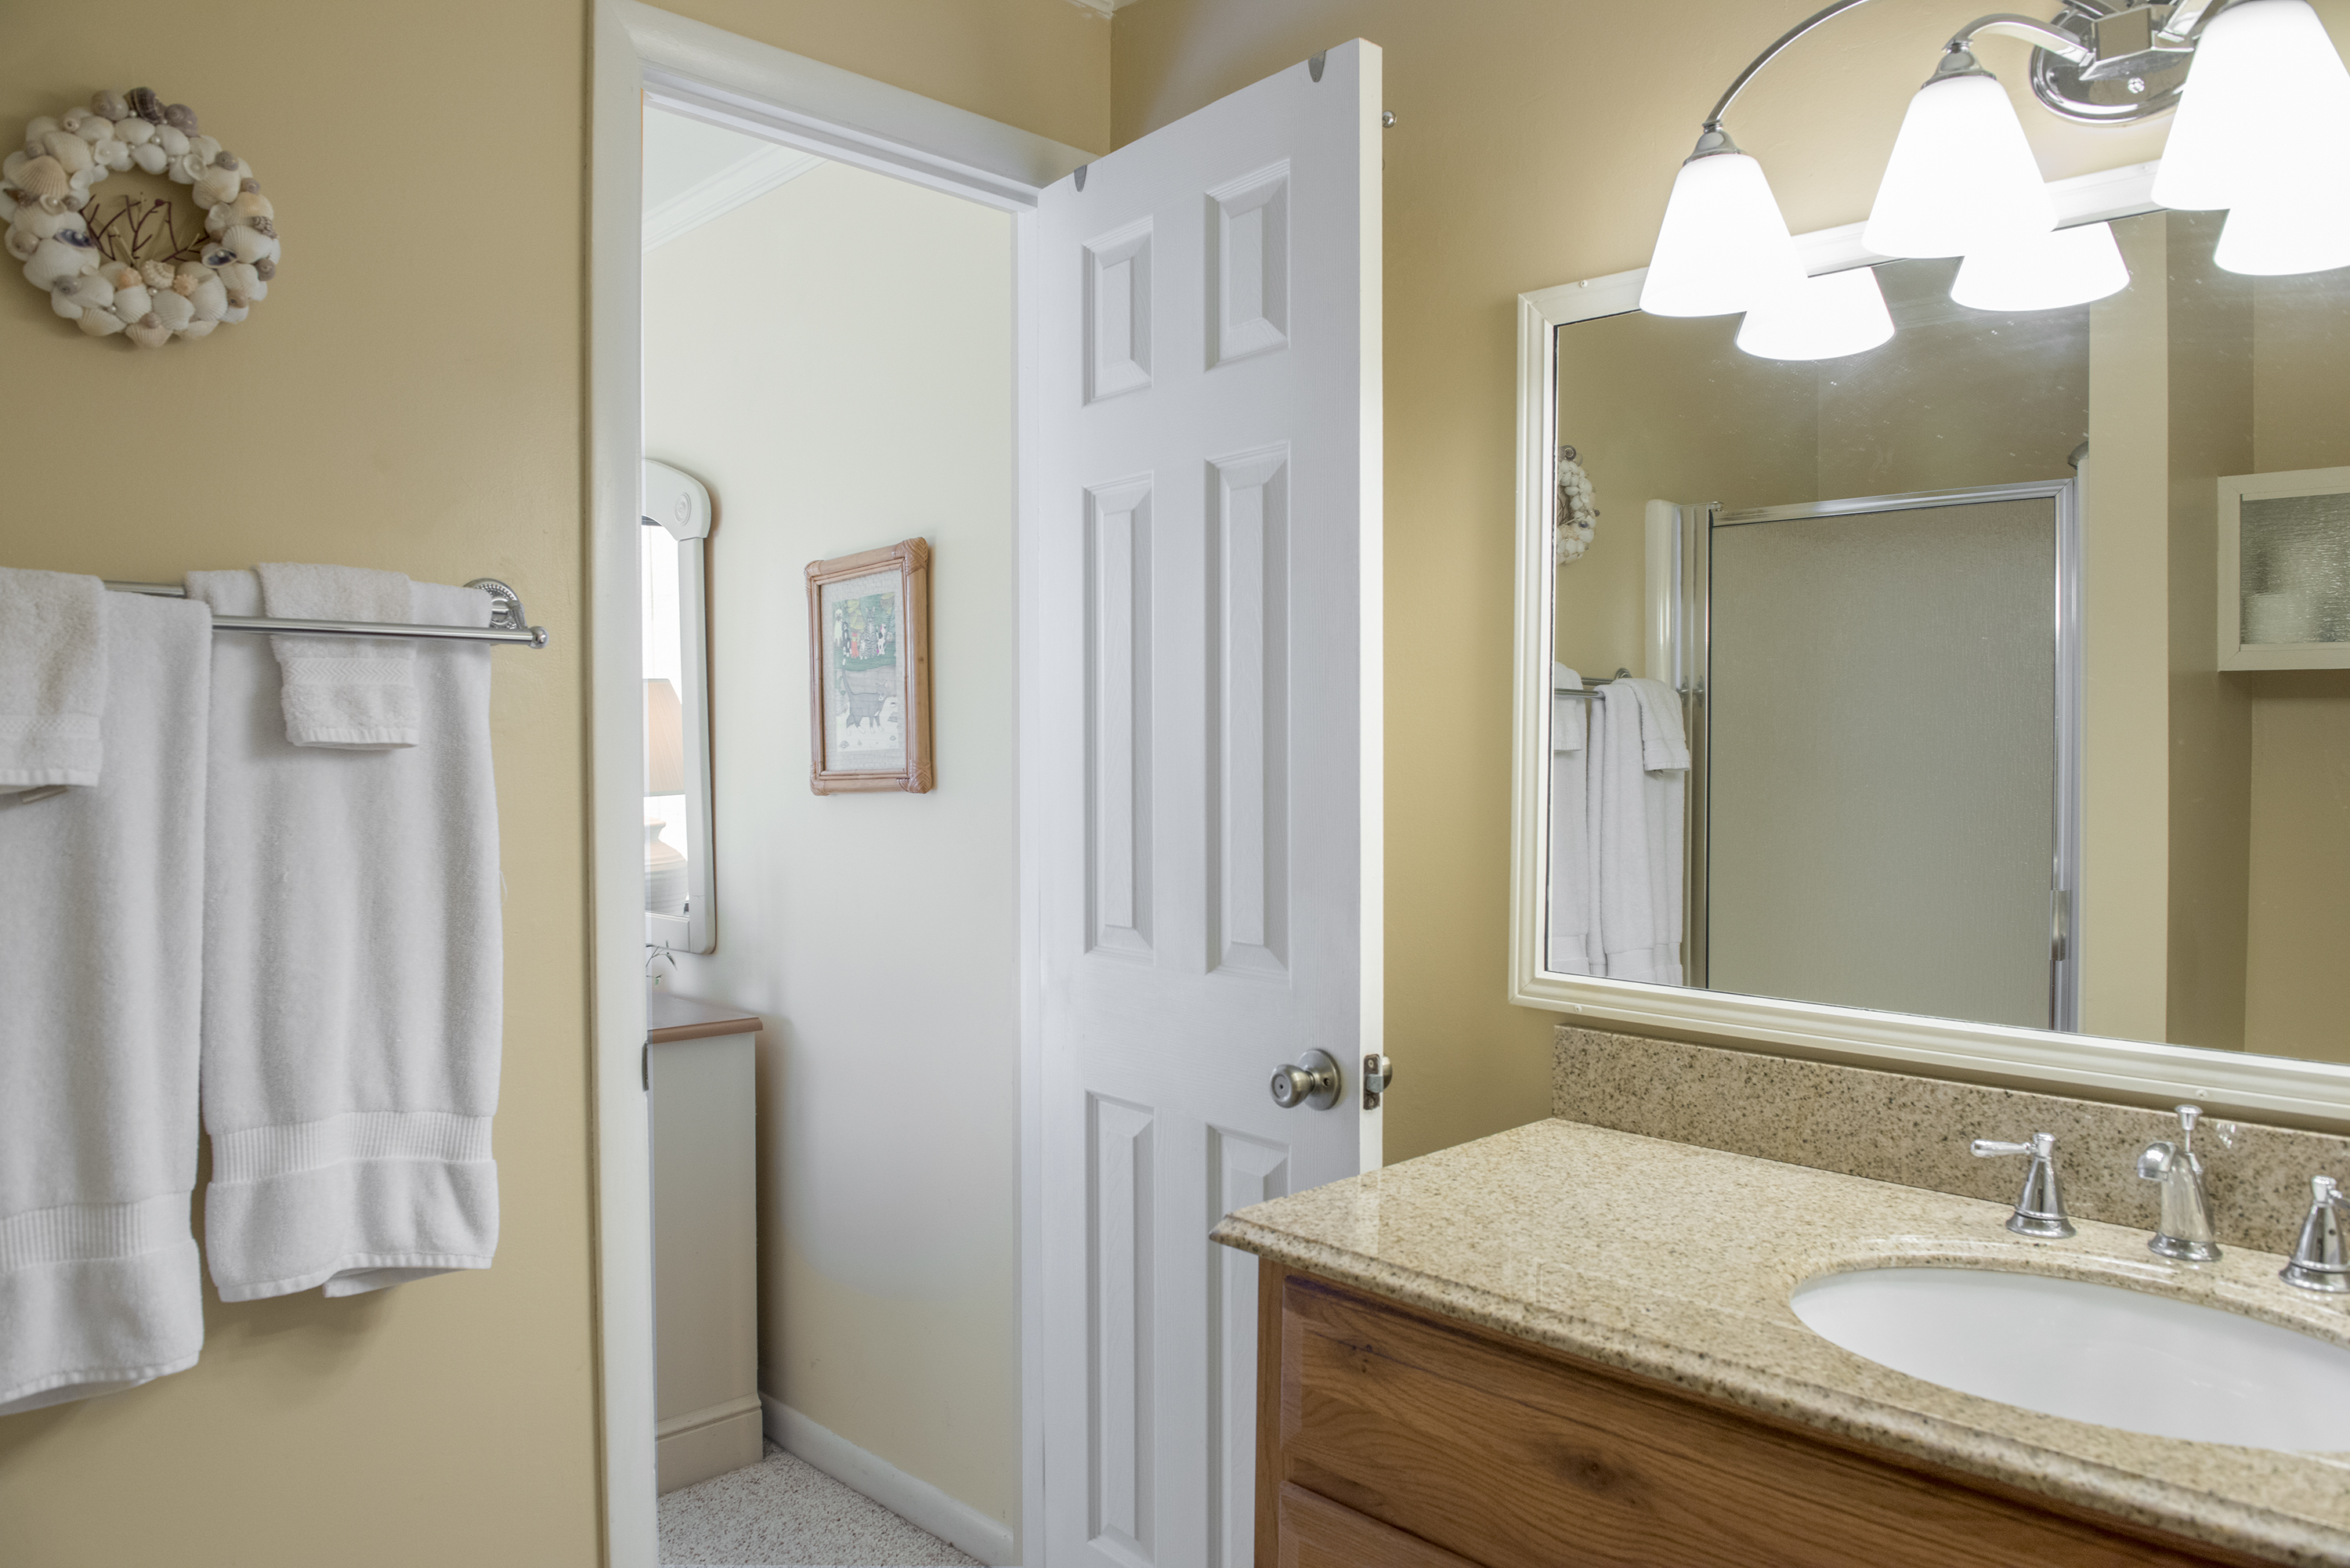 The master bathroom has an updated vanity and granite counters.